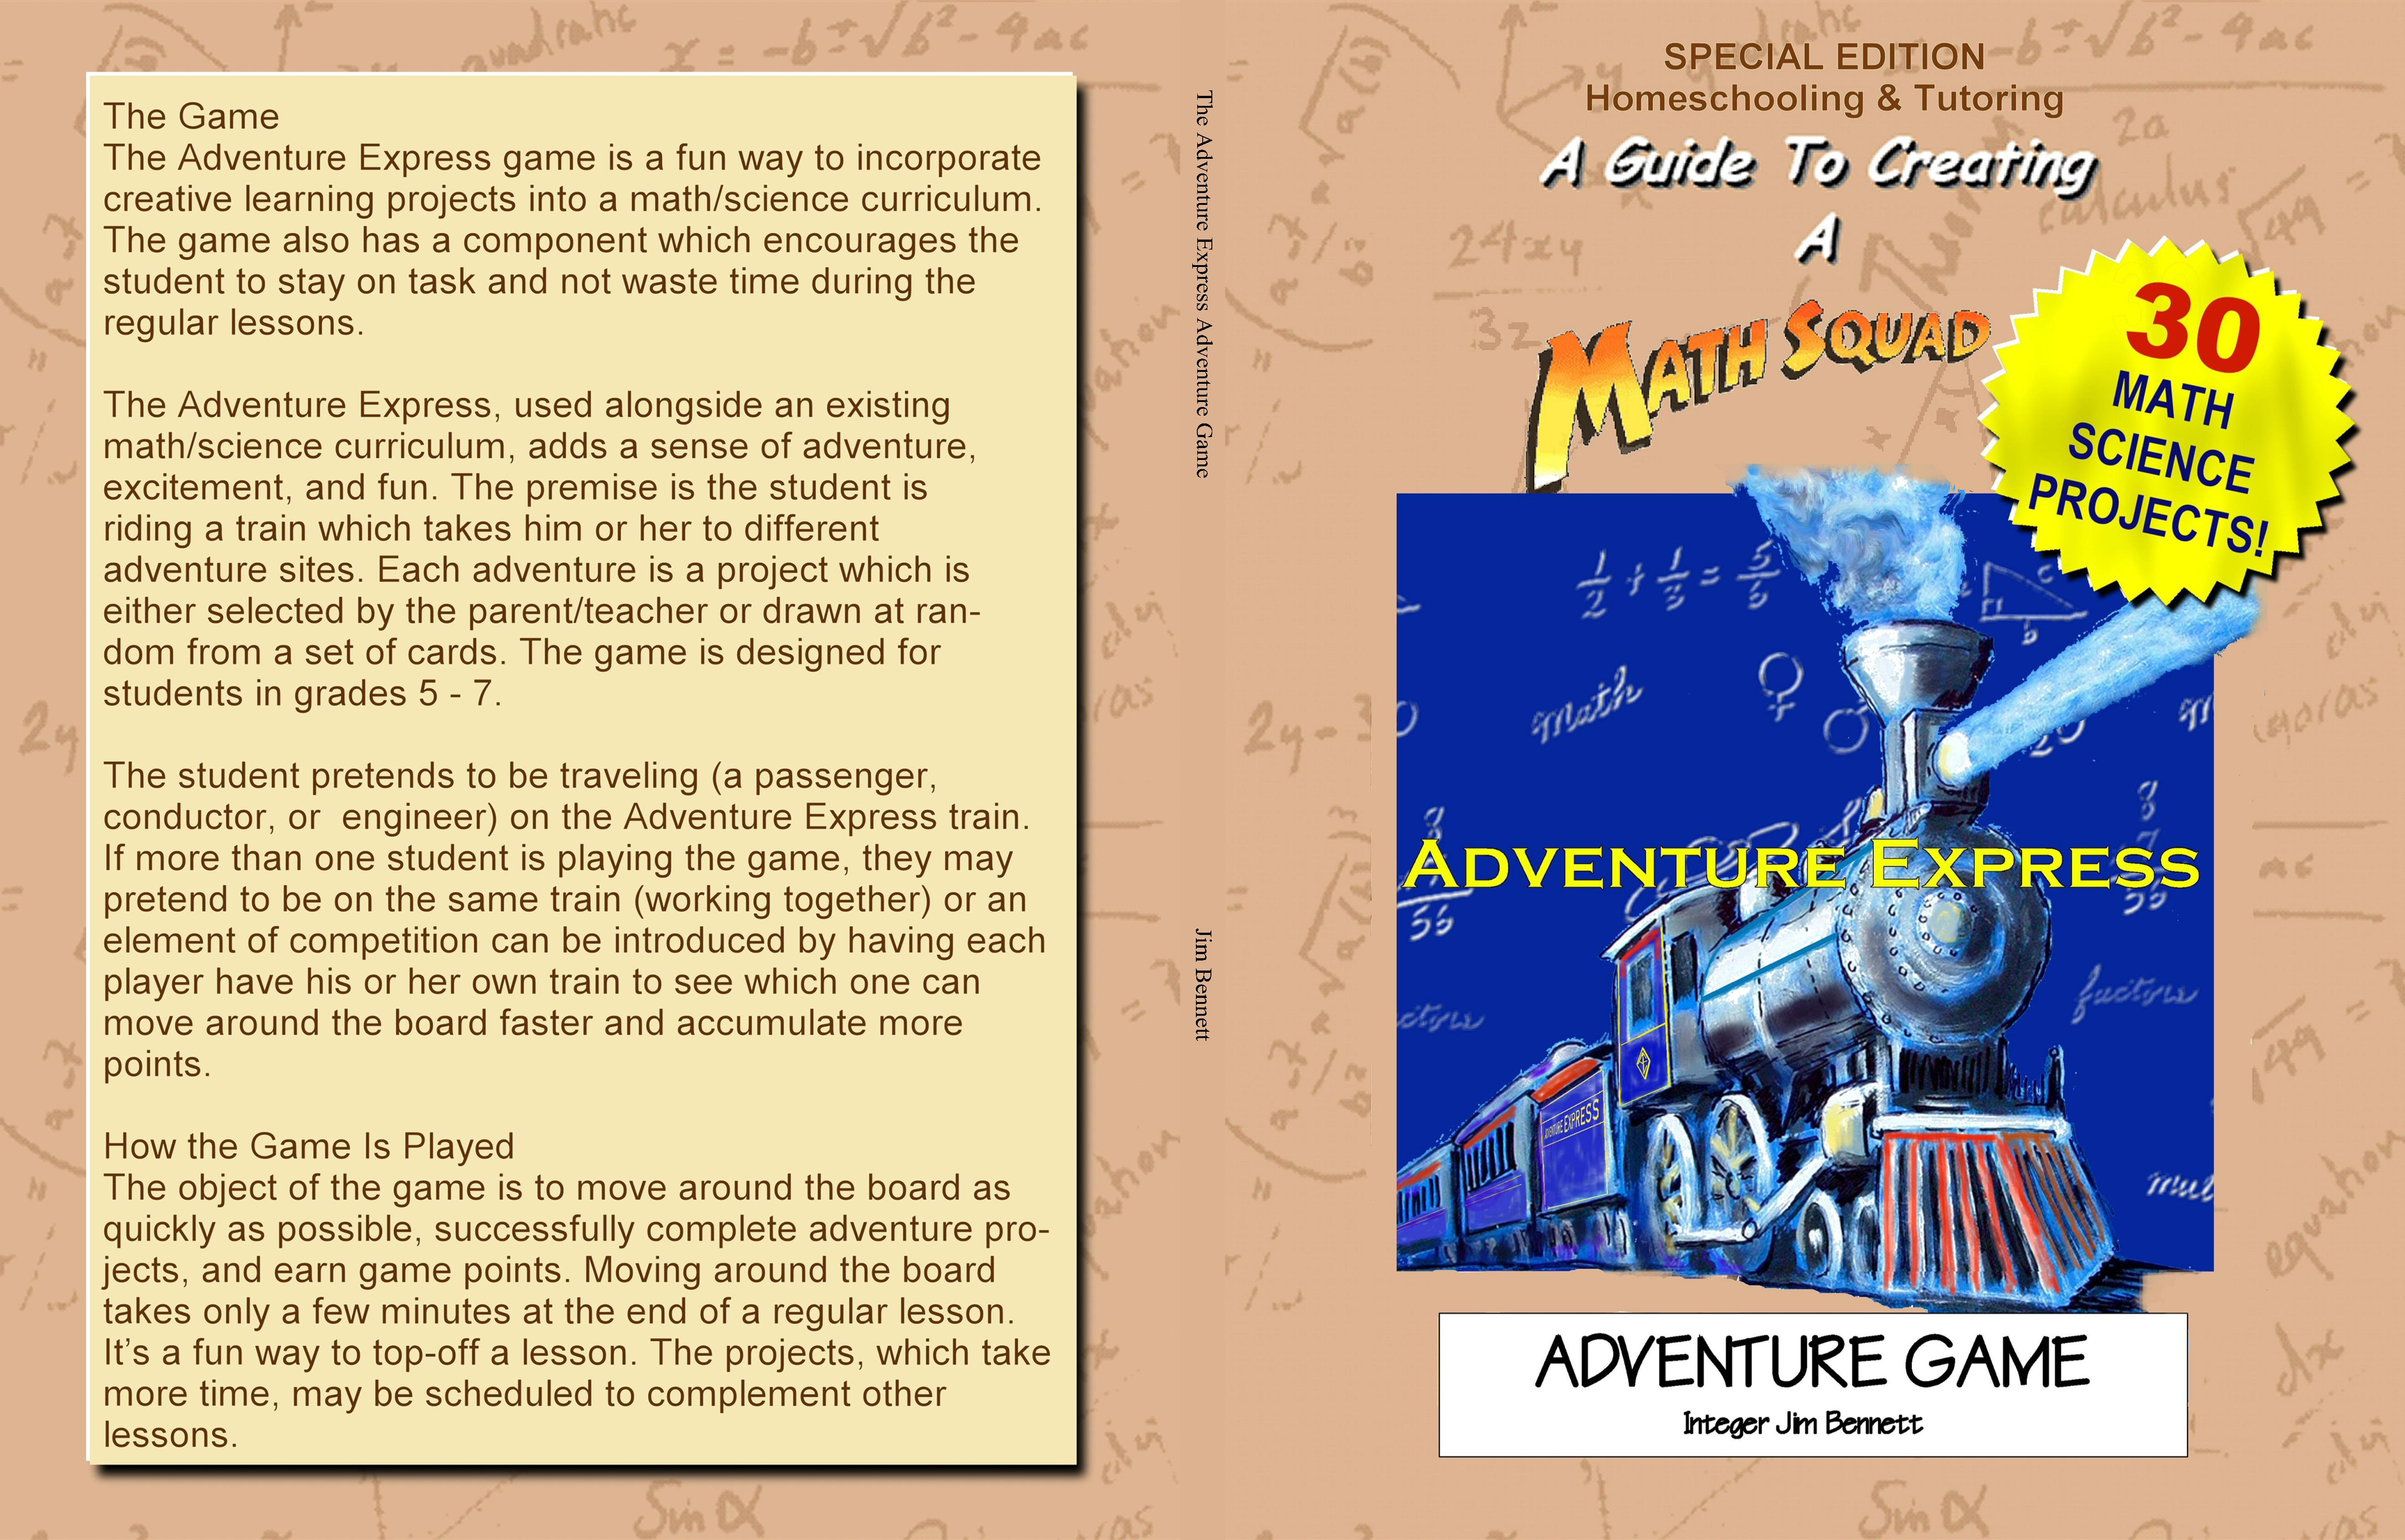 The Adventure Express Adventure Game cover image